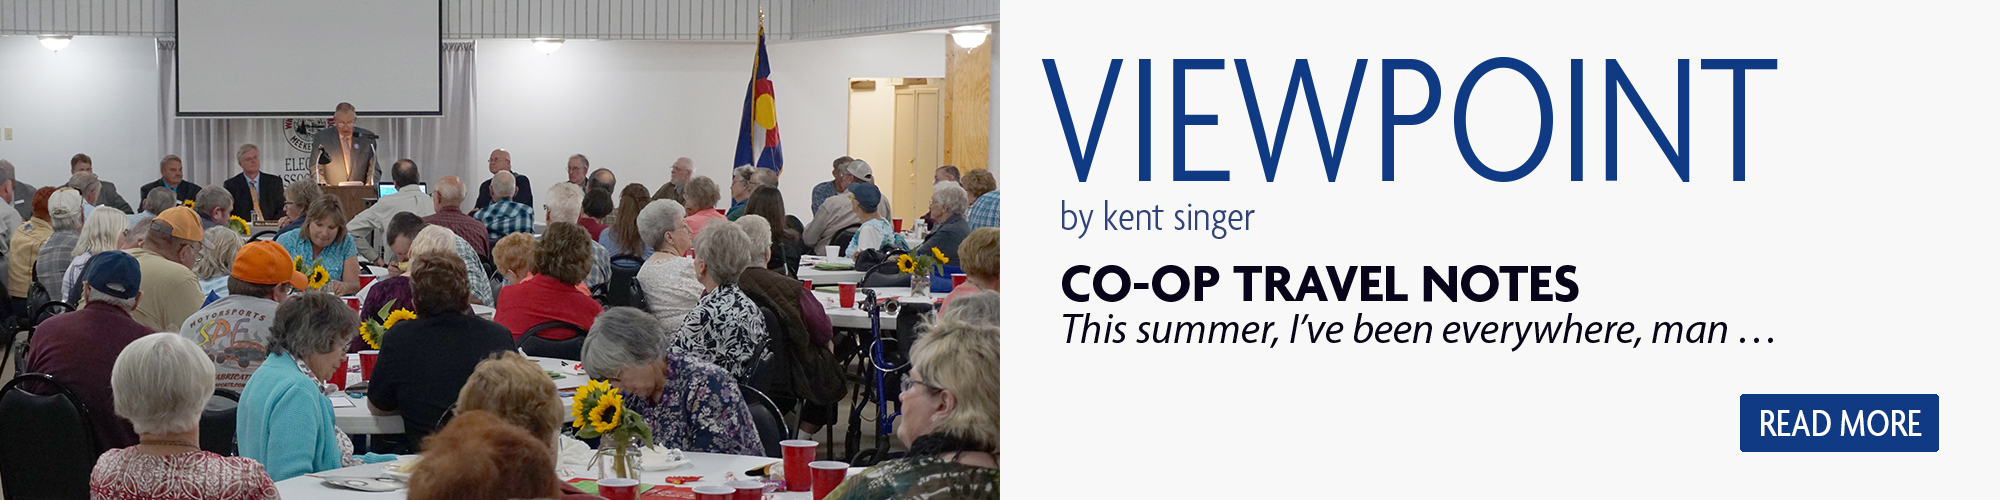 Viewpoint_Aug19